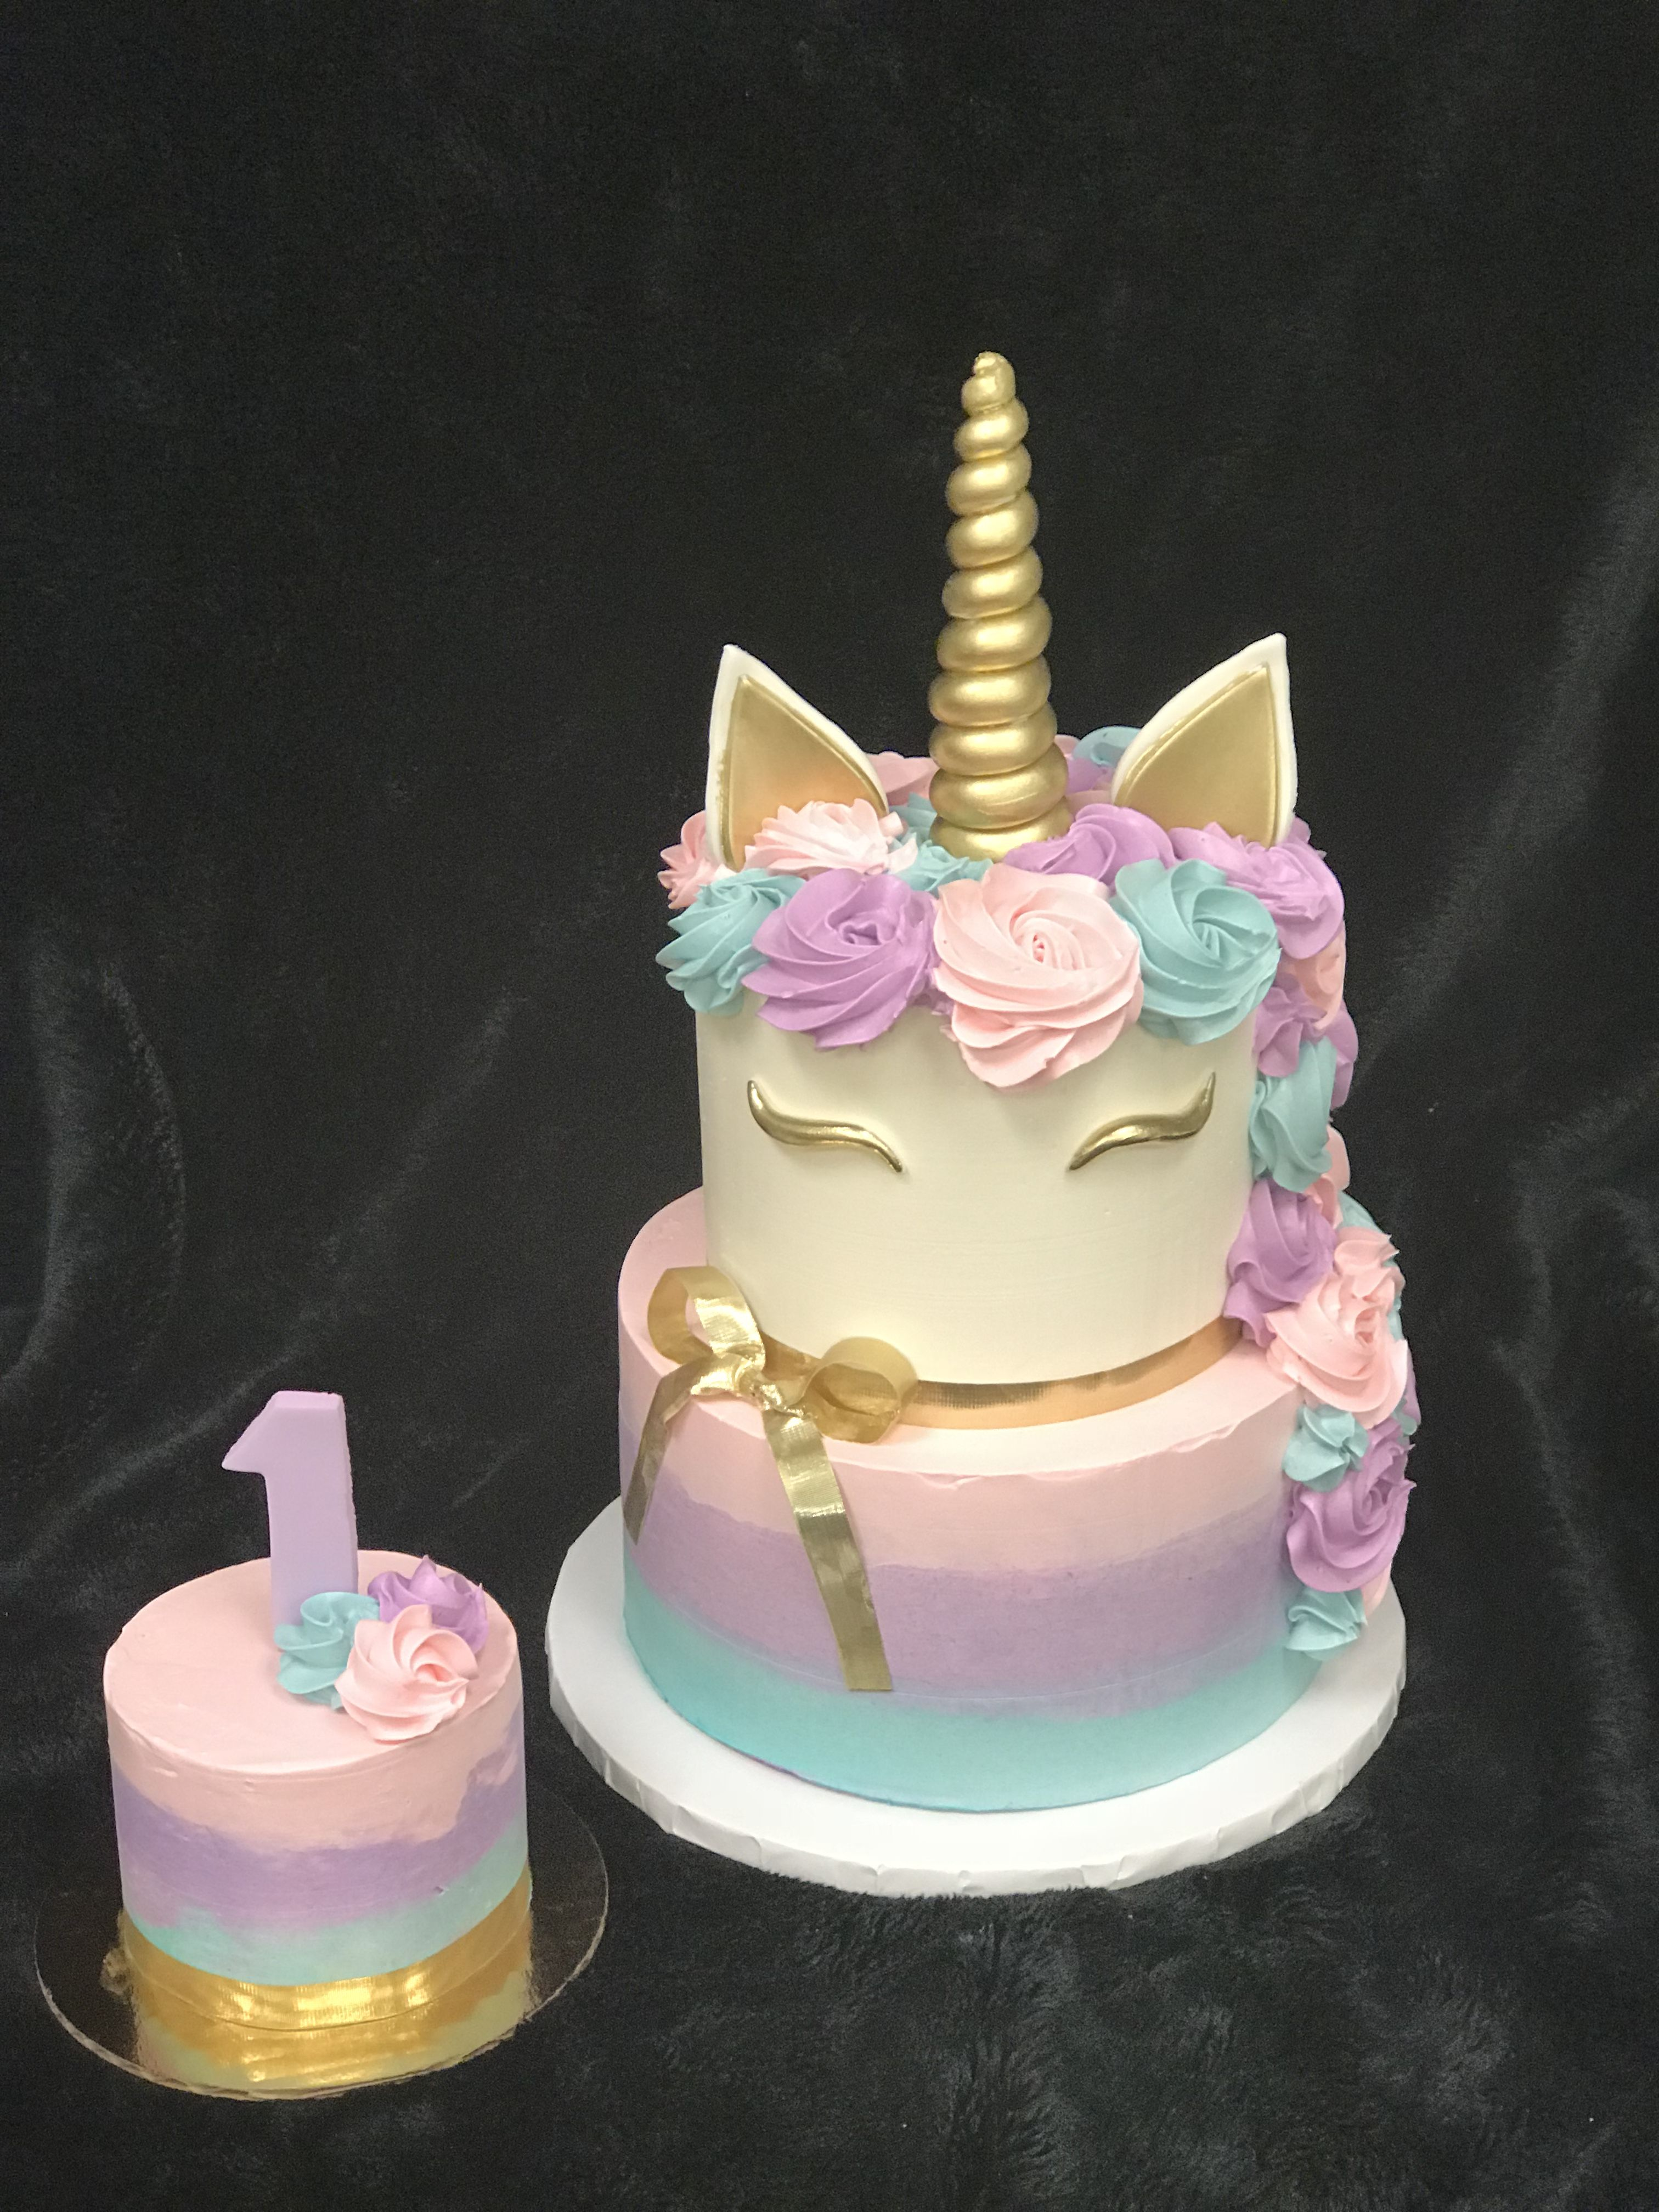 Unicorn Cake From Heartofcakelondon Decorated Cake Ideas